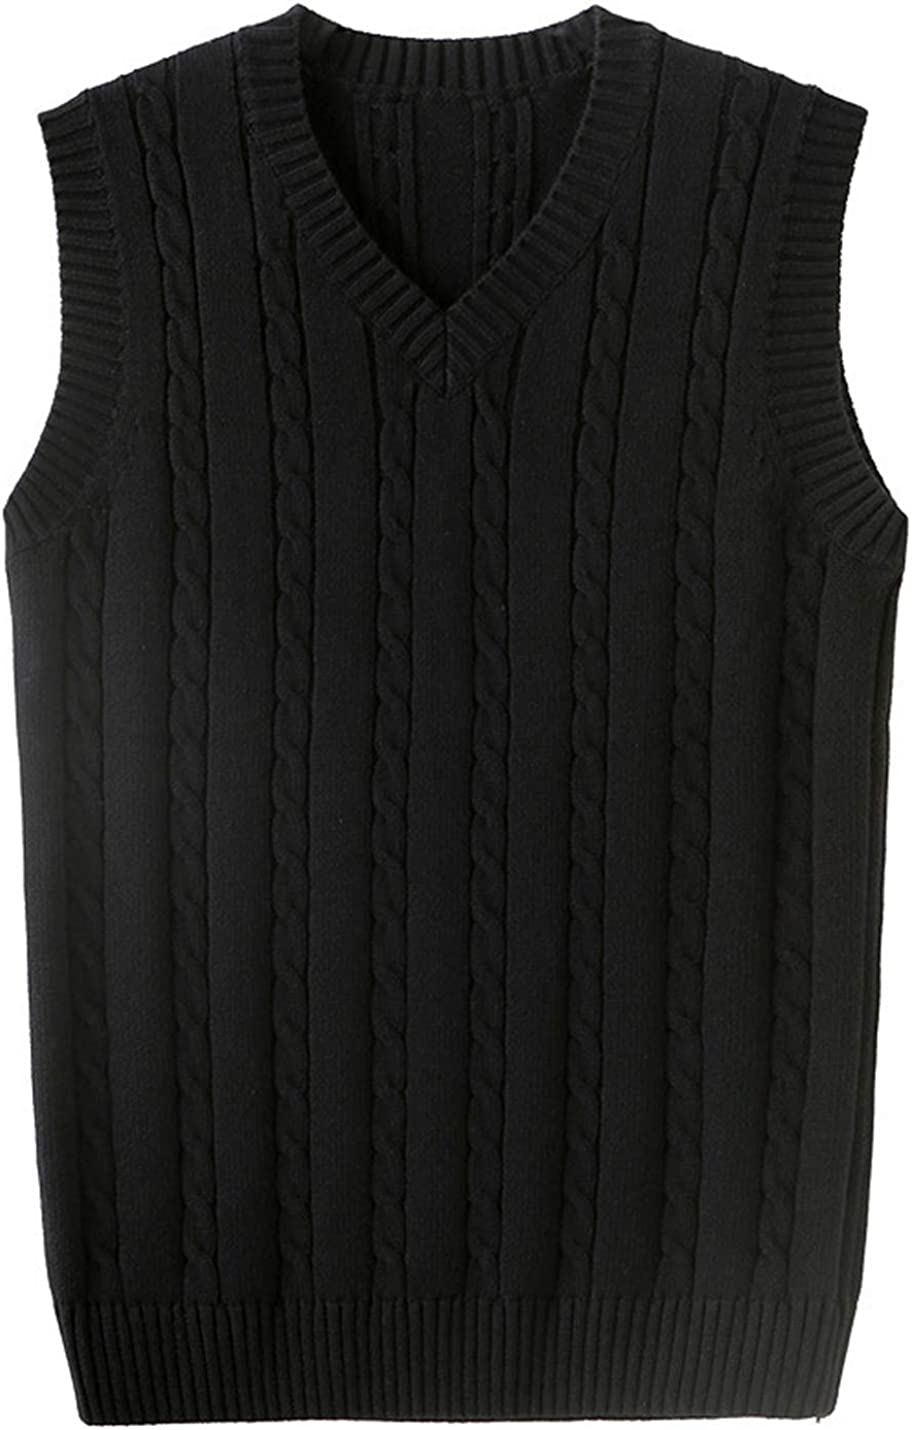 Omoone Men's Thick V Neck Cable Knit Sleeveless Pullover Sweater Vest Knitted Waistcoat